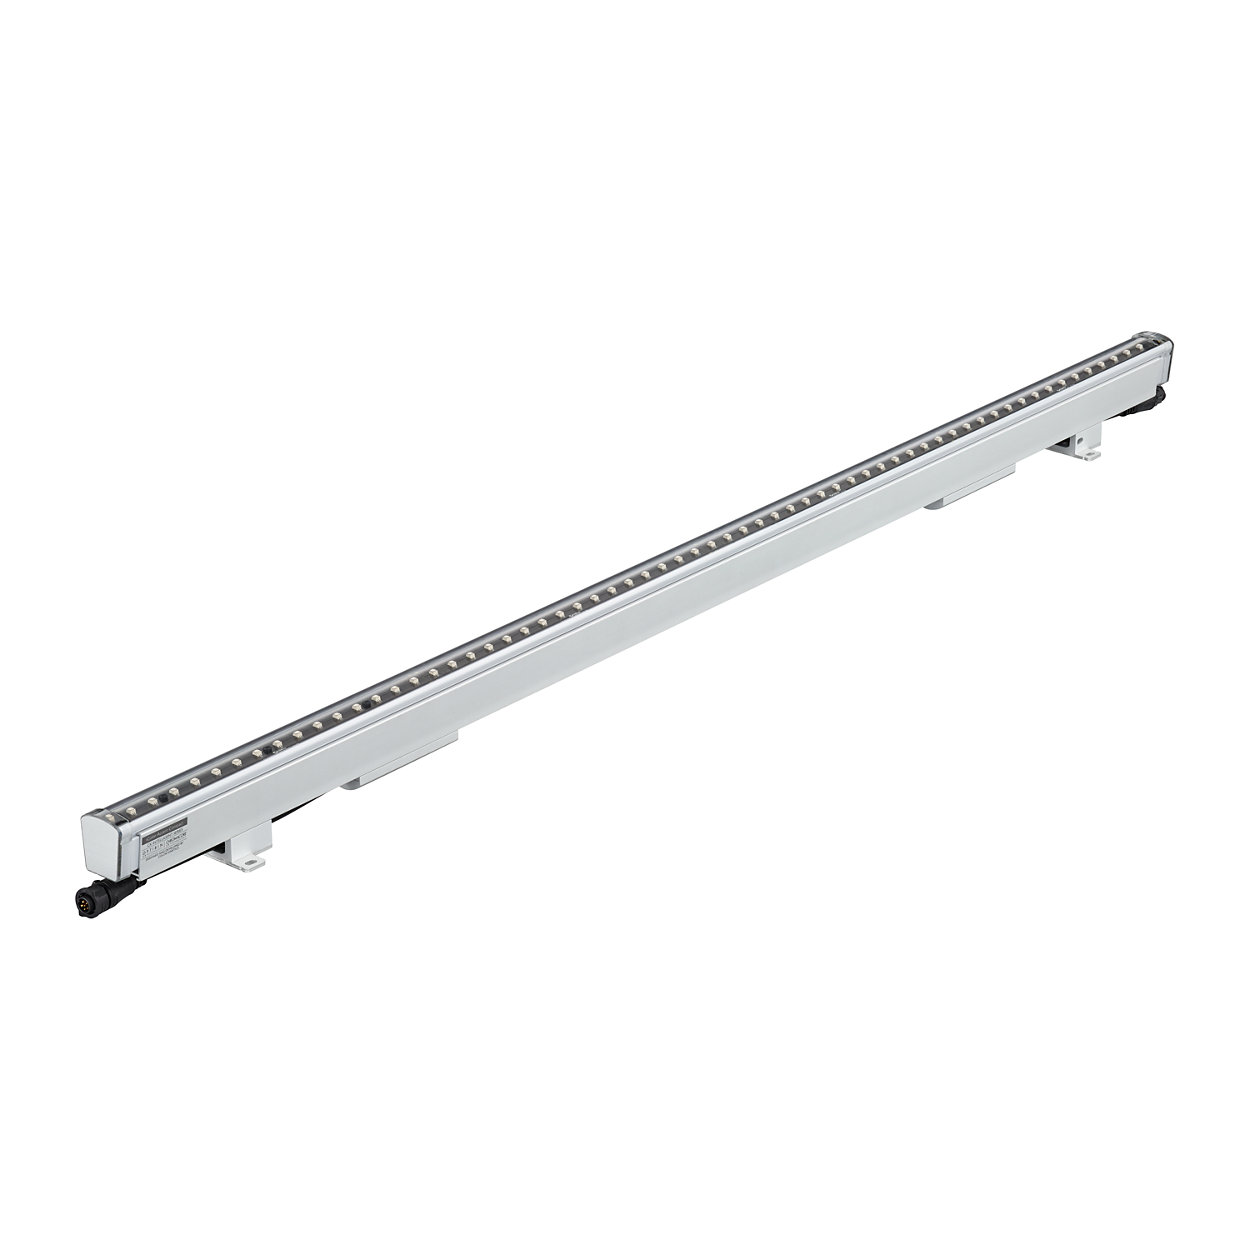 High resolution direct view linear fixture